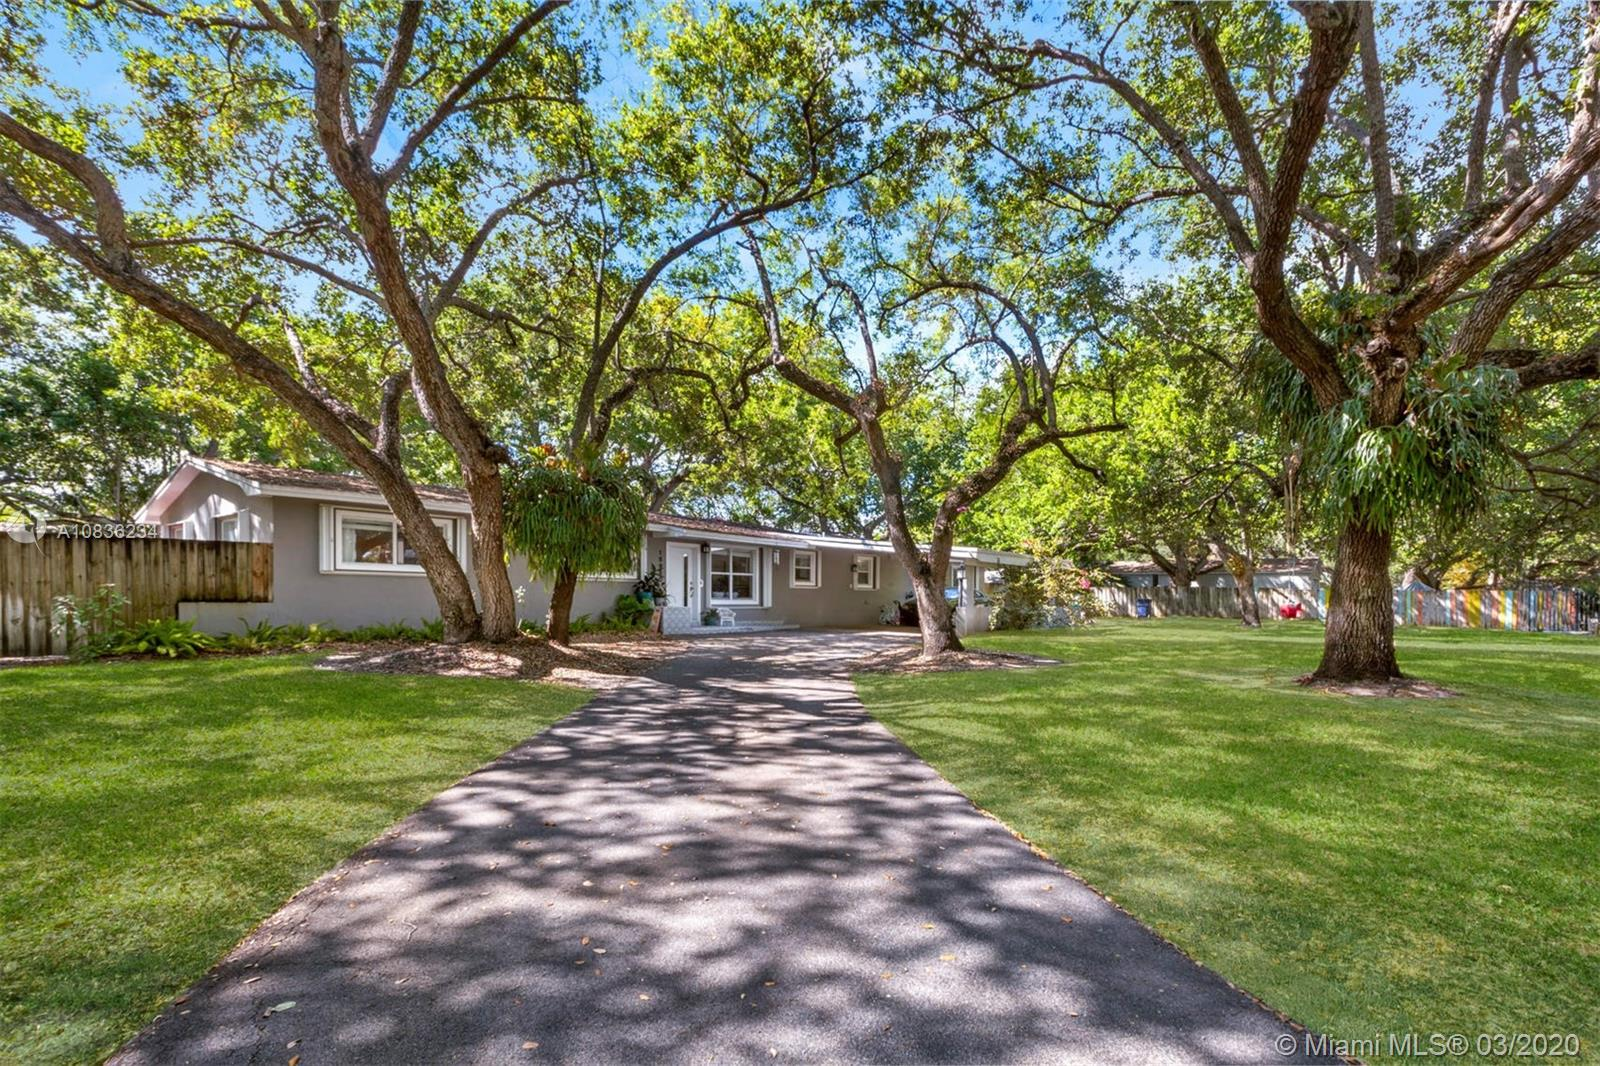 15950 SW 79th Ct, Palmetto Bay, Florida 33157, 3 Bedrooms Bedrooms, ,2 BathroomsBathrooms,Residential,For Sale,15950 SW 79th Ct,A10836234